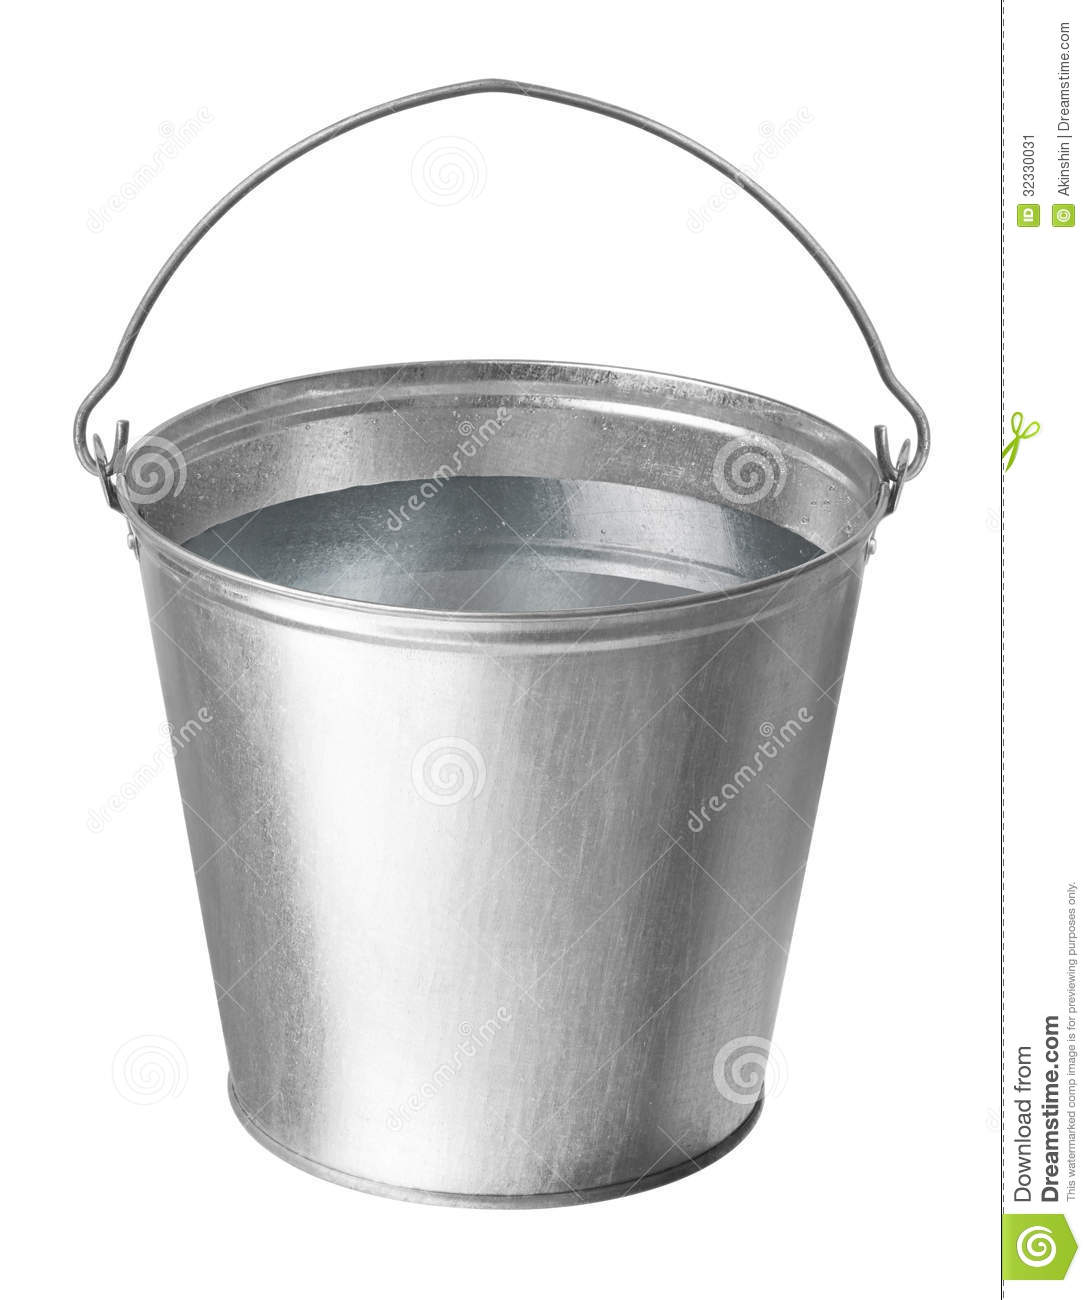 Metal Bucket With Water Stock Image  Image: 32330031